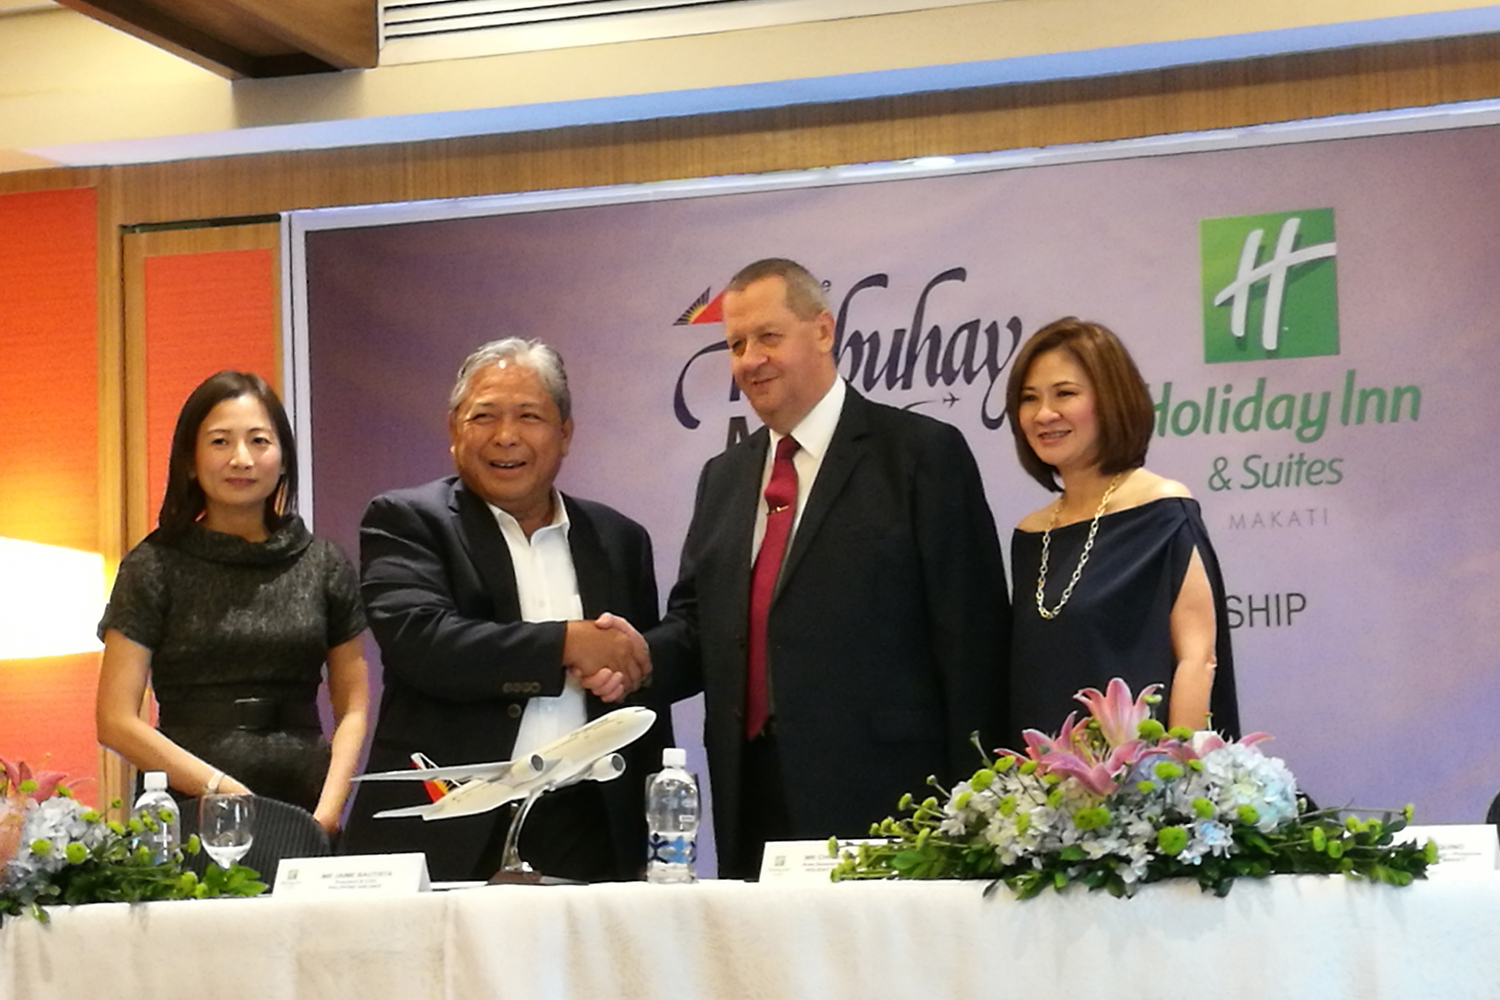 pal-mabuhay-miles-holiday-inn-suites-2